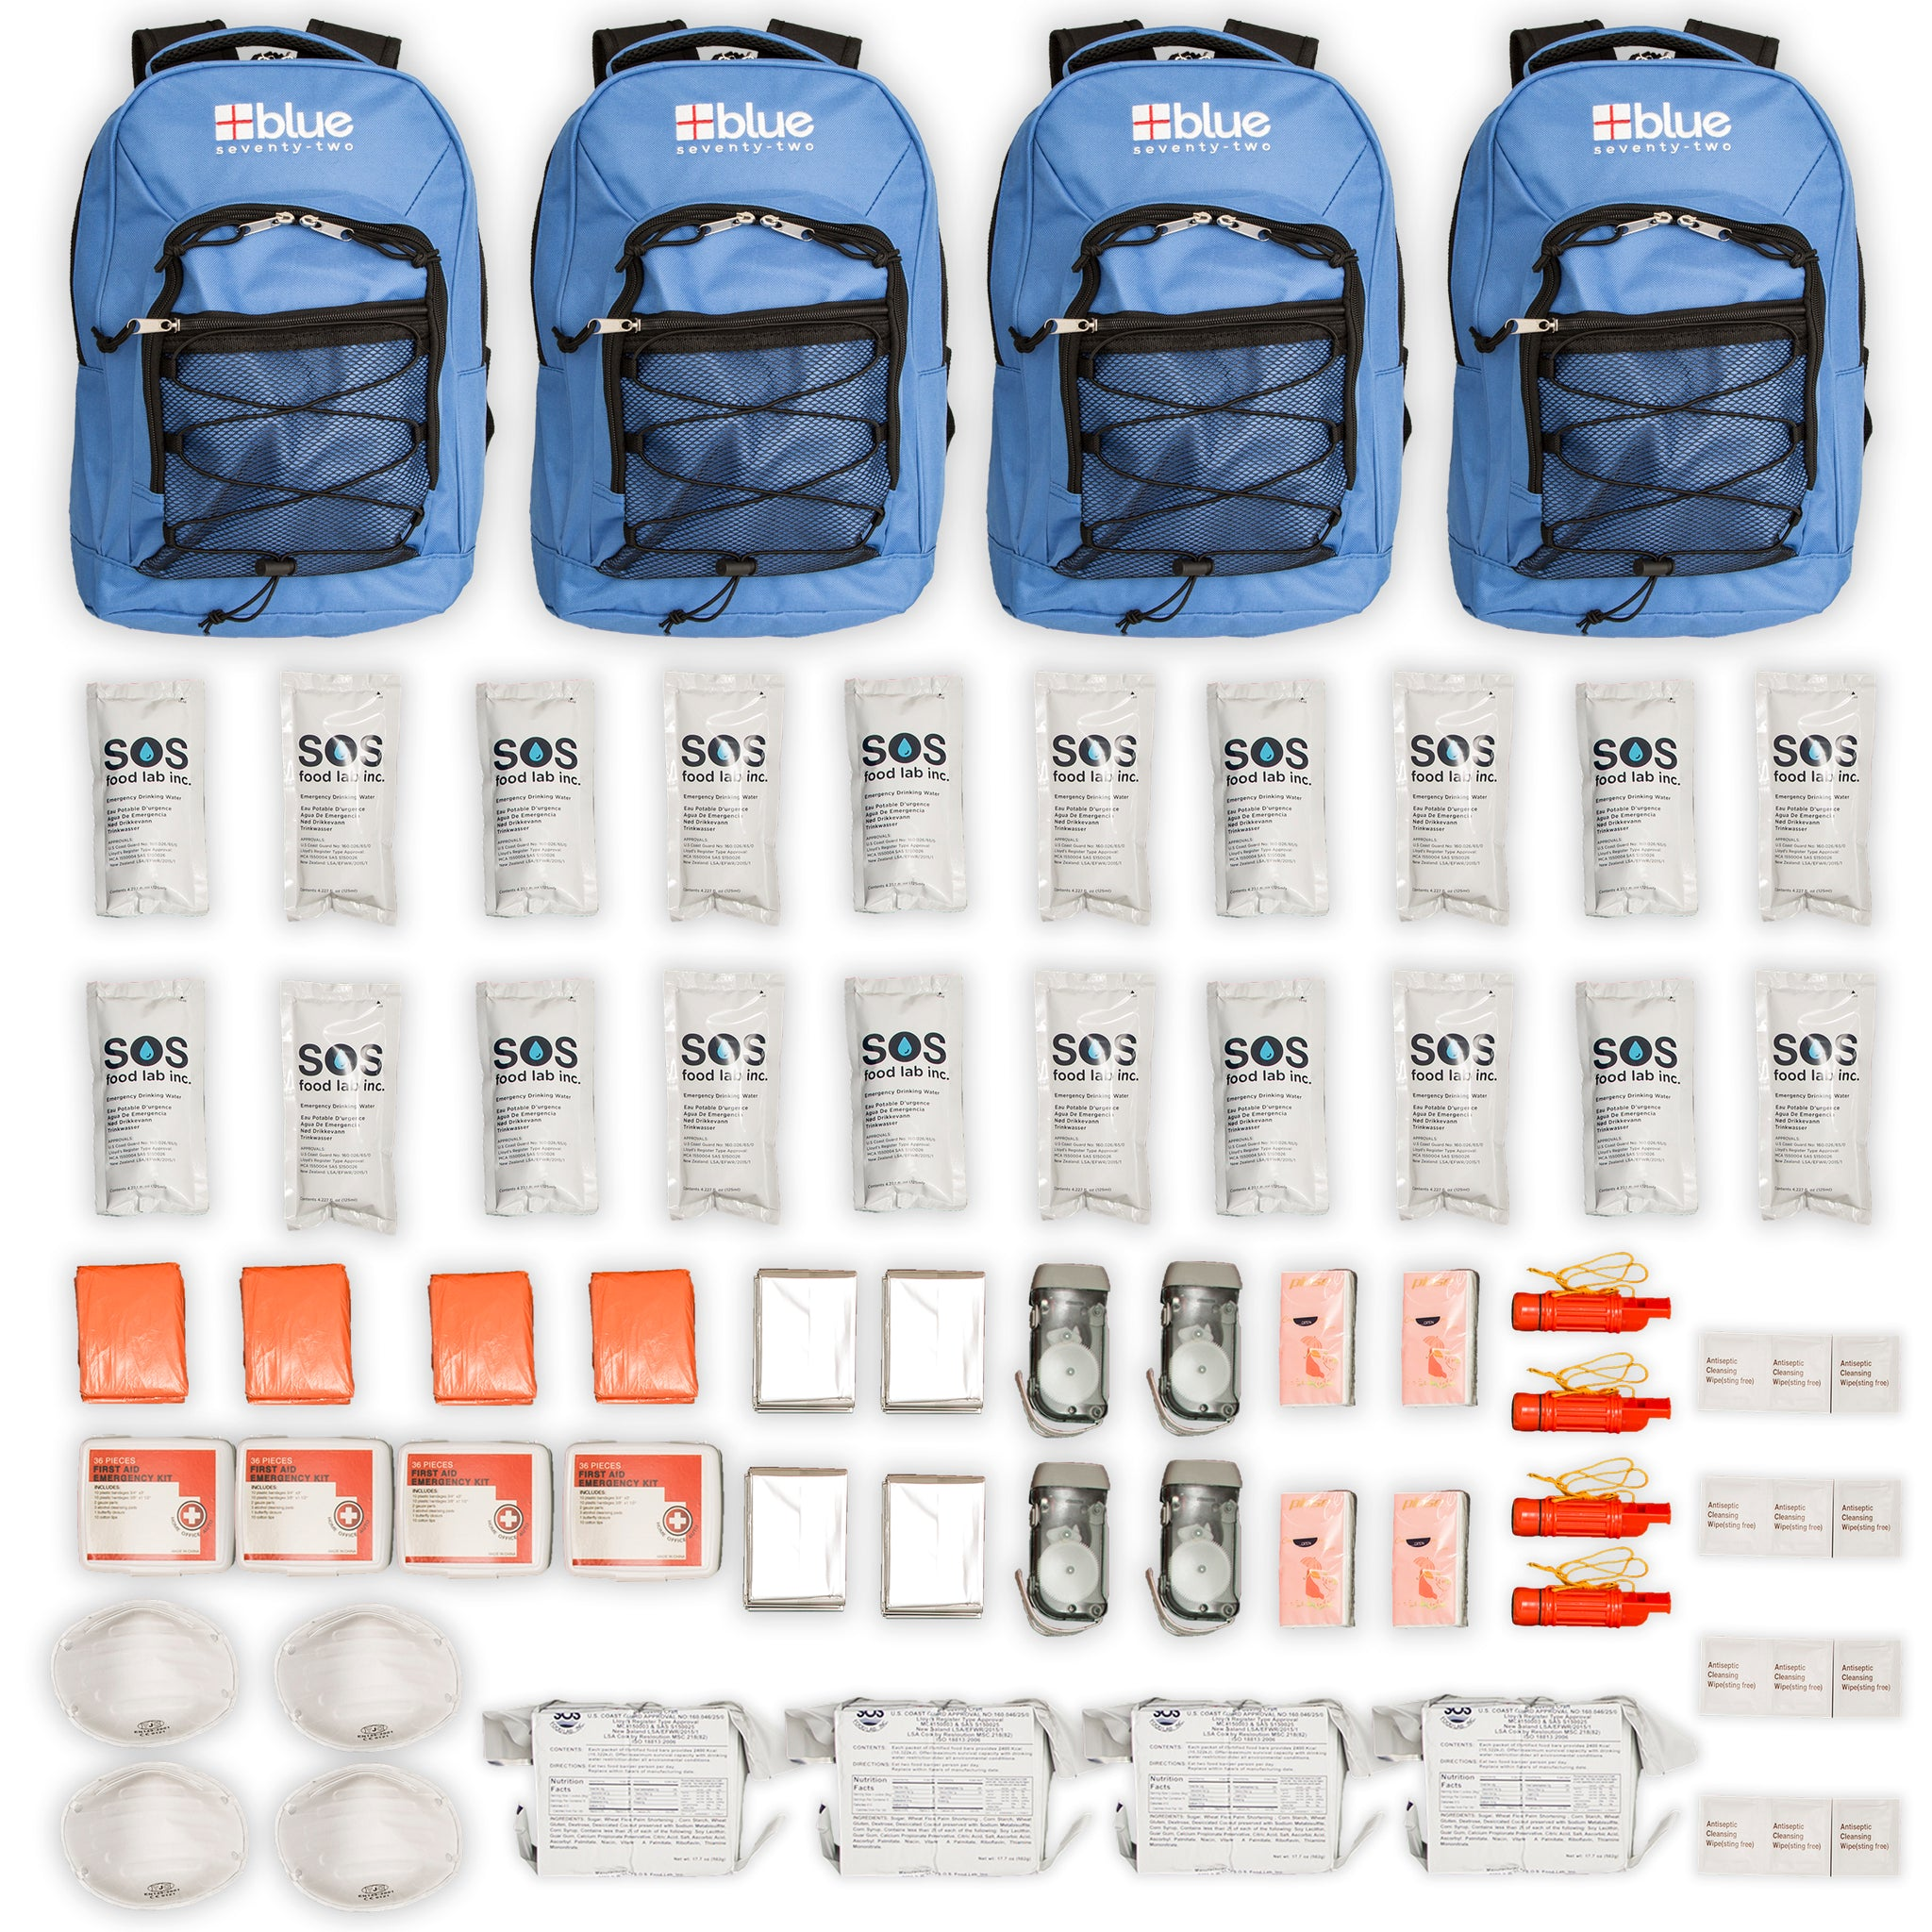 Blue Seventy-Two Family Pack - 4 x 3 Day Emergency Kits for 1 Person